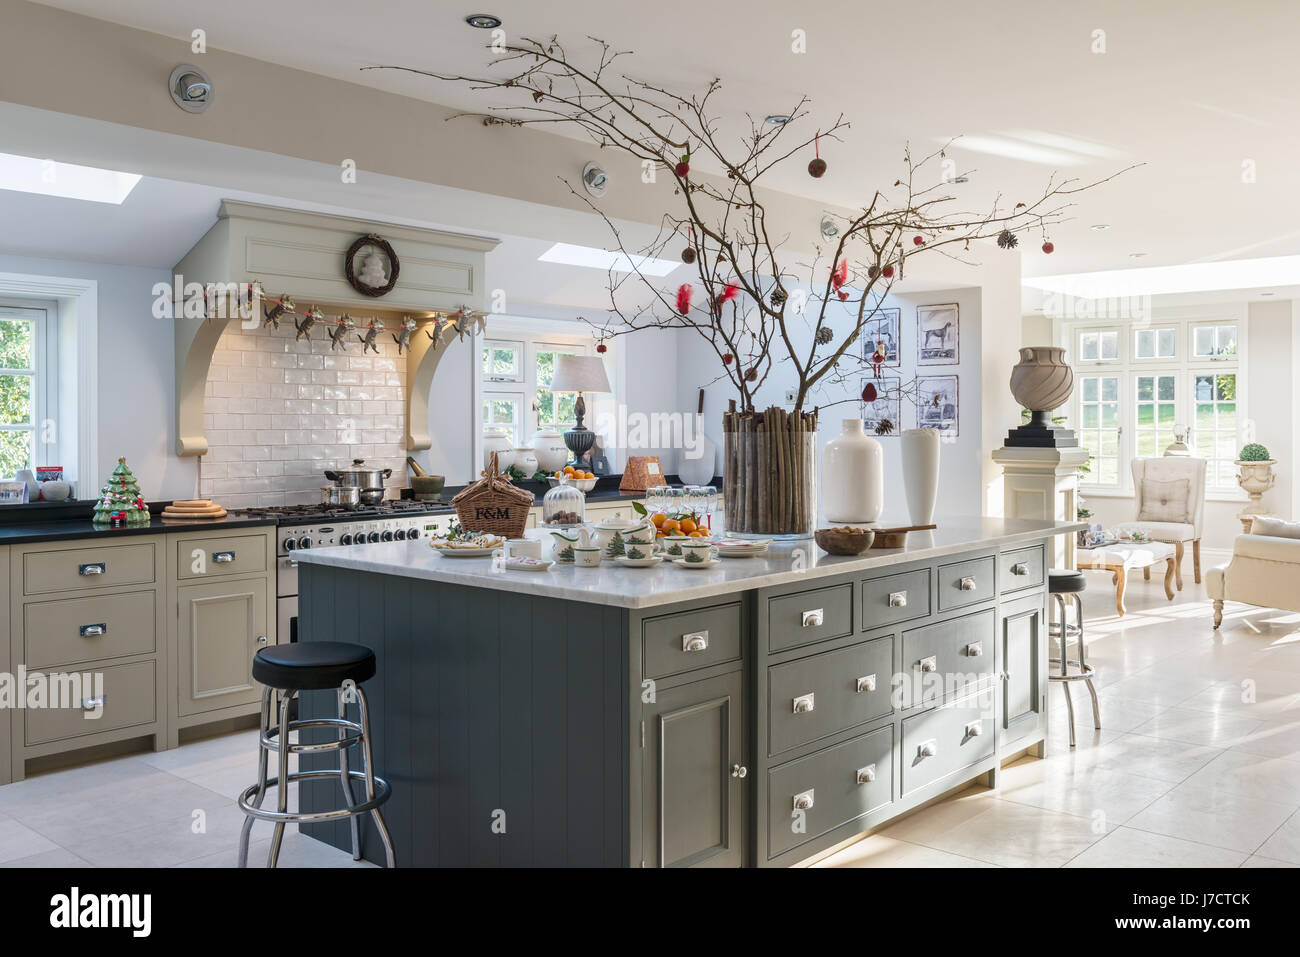 spacious kitchen island unit with christmas decorations in 18th stock photo 142268131 alamy. Black Bedroom Furniture Sets. Home Design Ideas